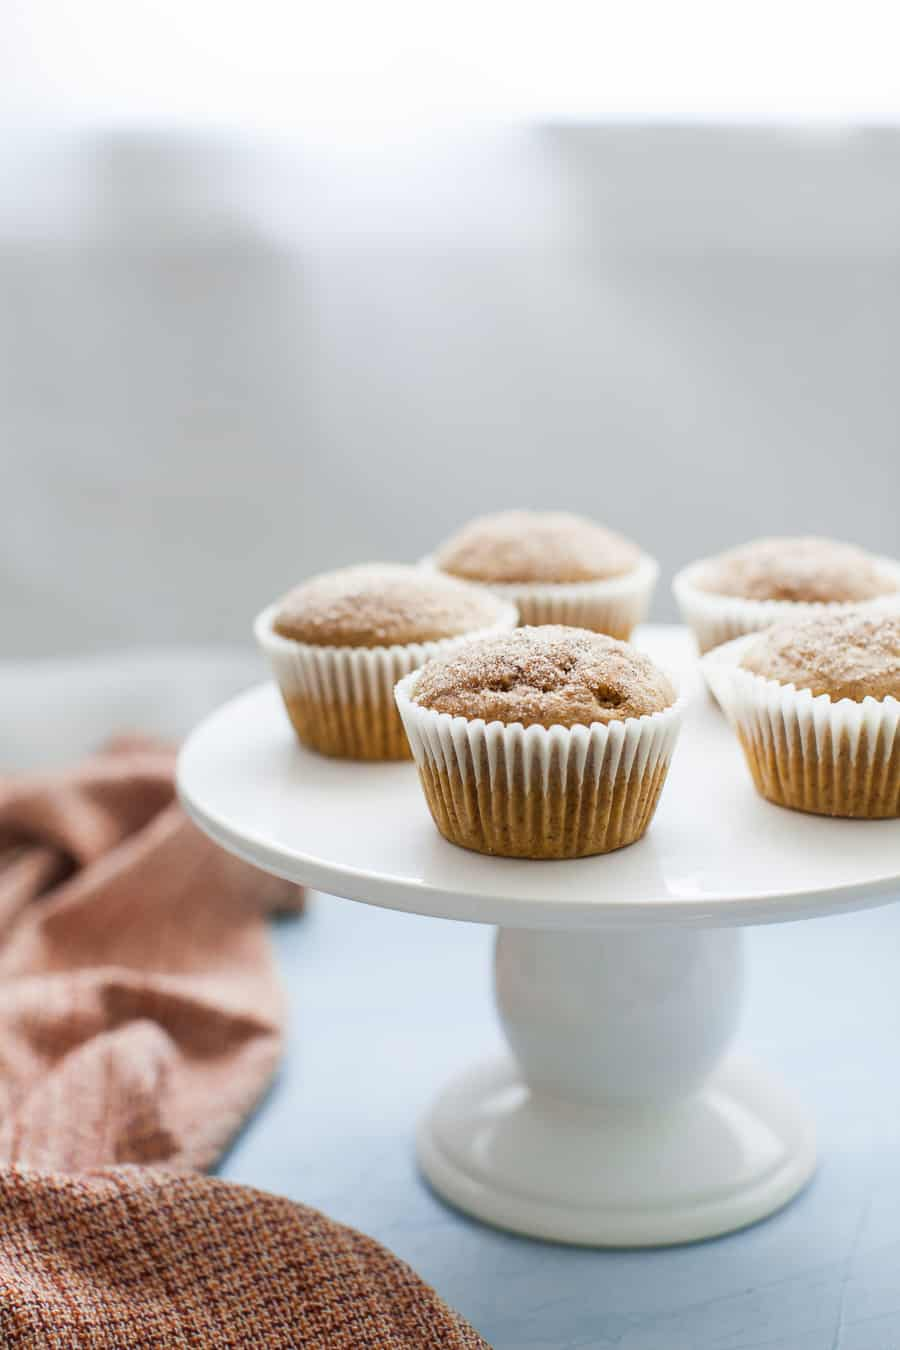 A batch of pumpkin muffins, wrapped in cupcake liners, sitting on top of a white porcelain cake stand.